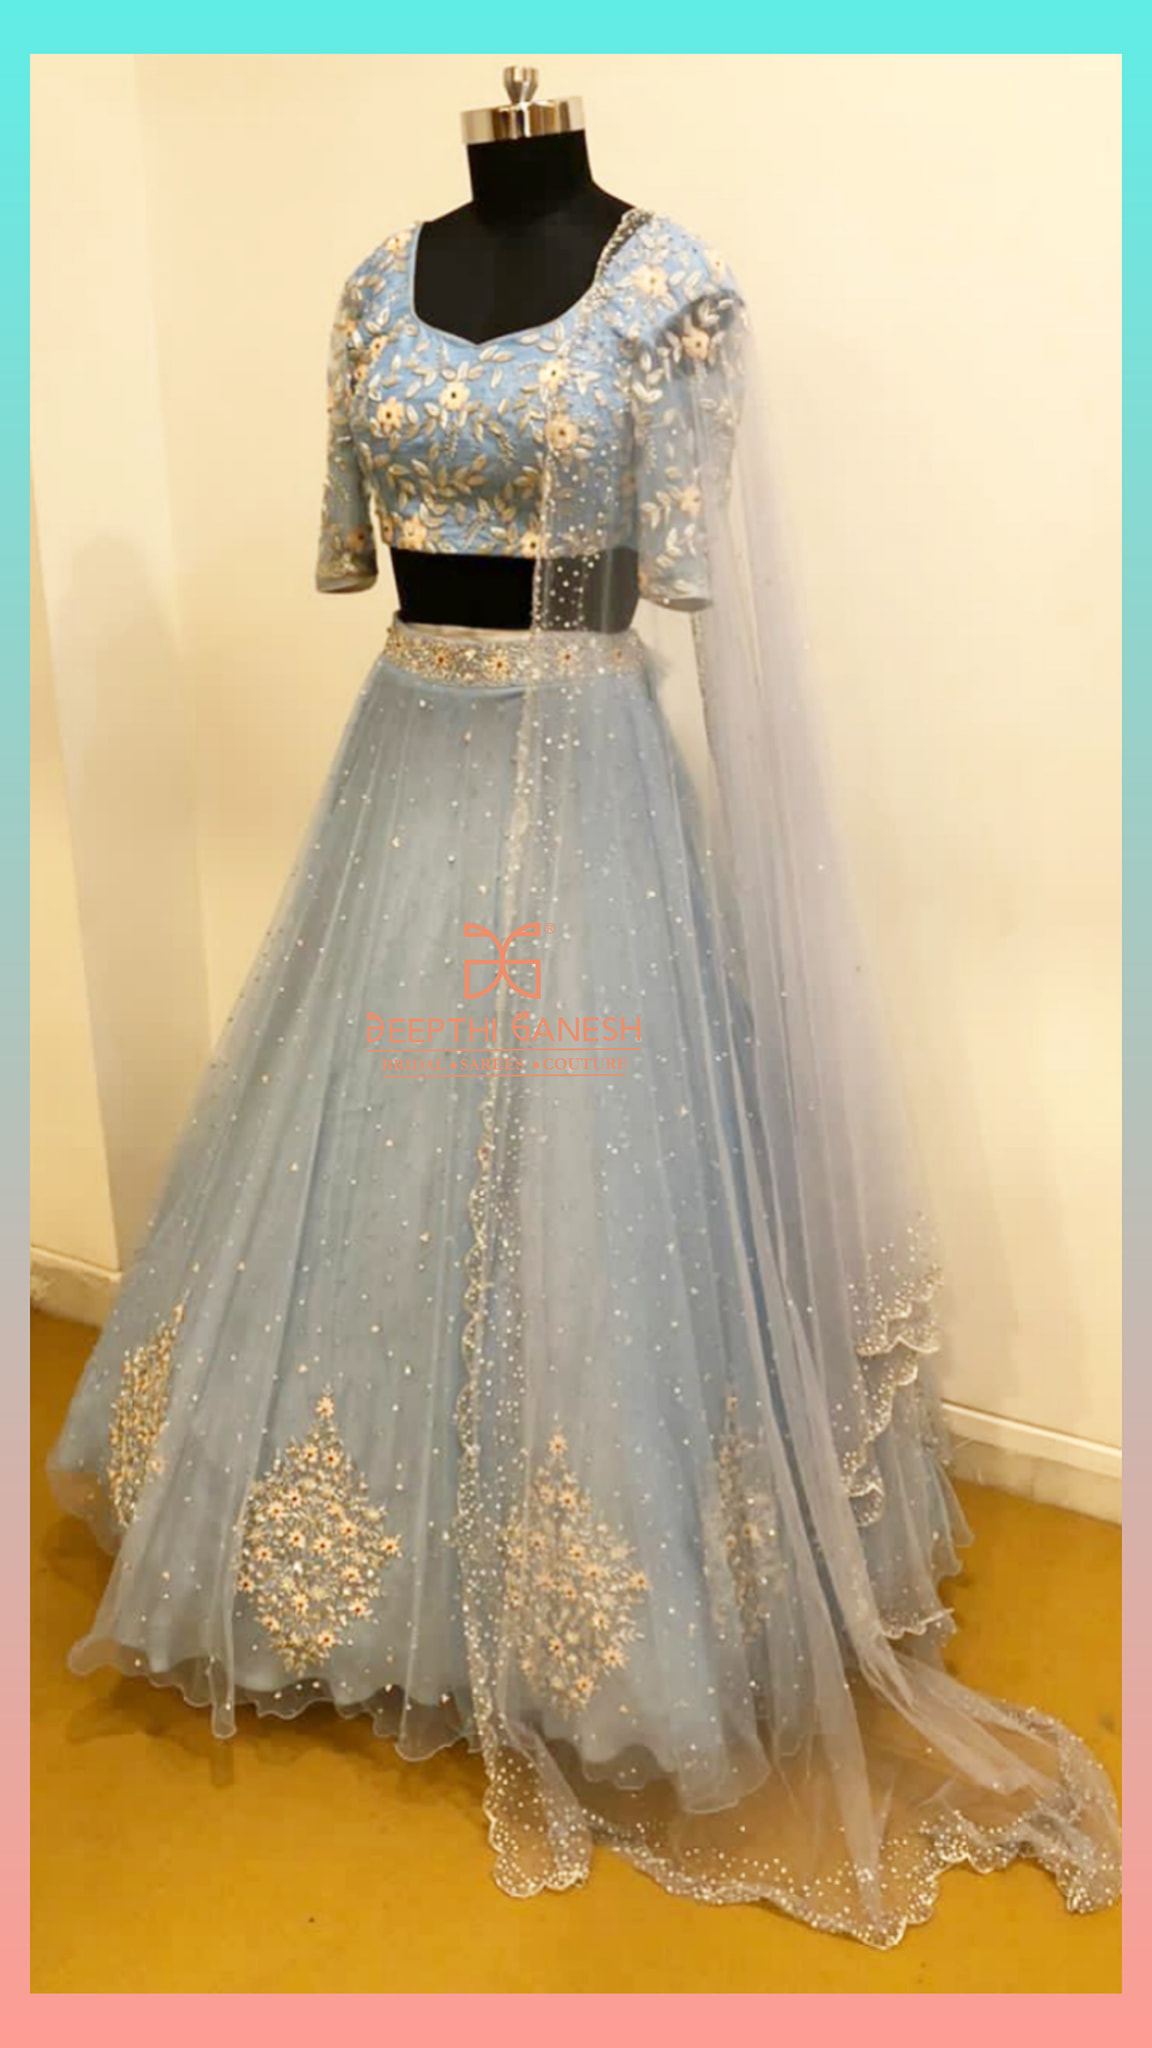 Ice Blue Net Bridal Lehenga !!!Gorgeous ice blue color net bridal lehenga and blouse with dupatta. Blouse with floral hand embroidery work.  2021-06-18